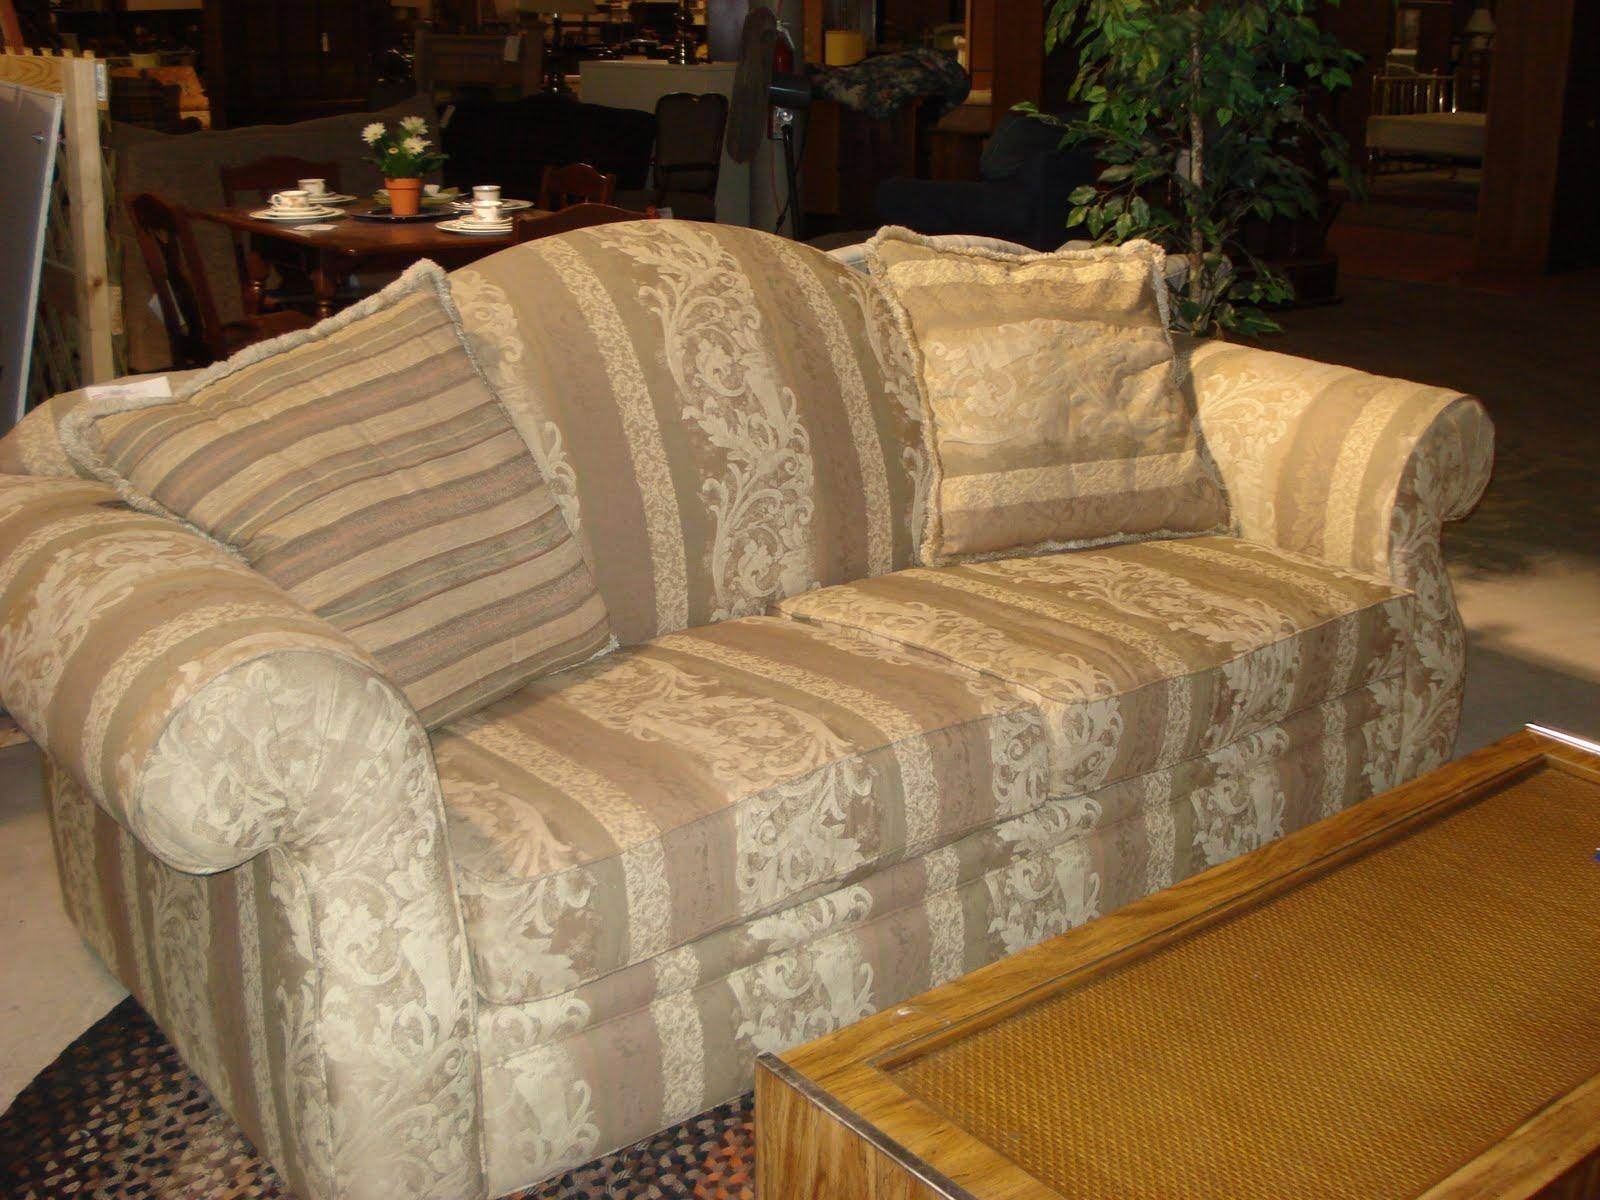 20 Best Collection Of Alan White Couches | Sofa Ideas for Alan White Couches (Image 2 of 15)